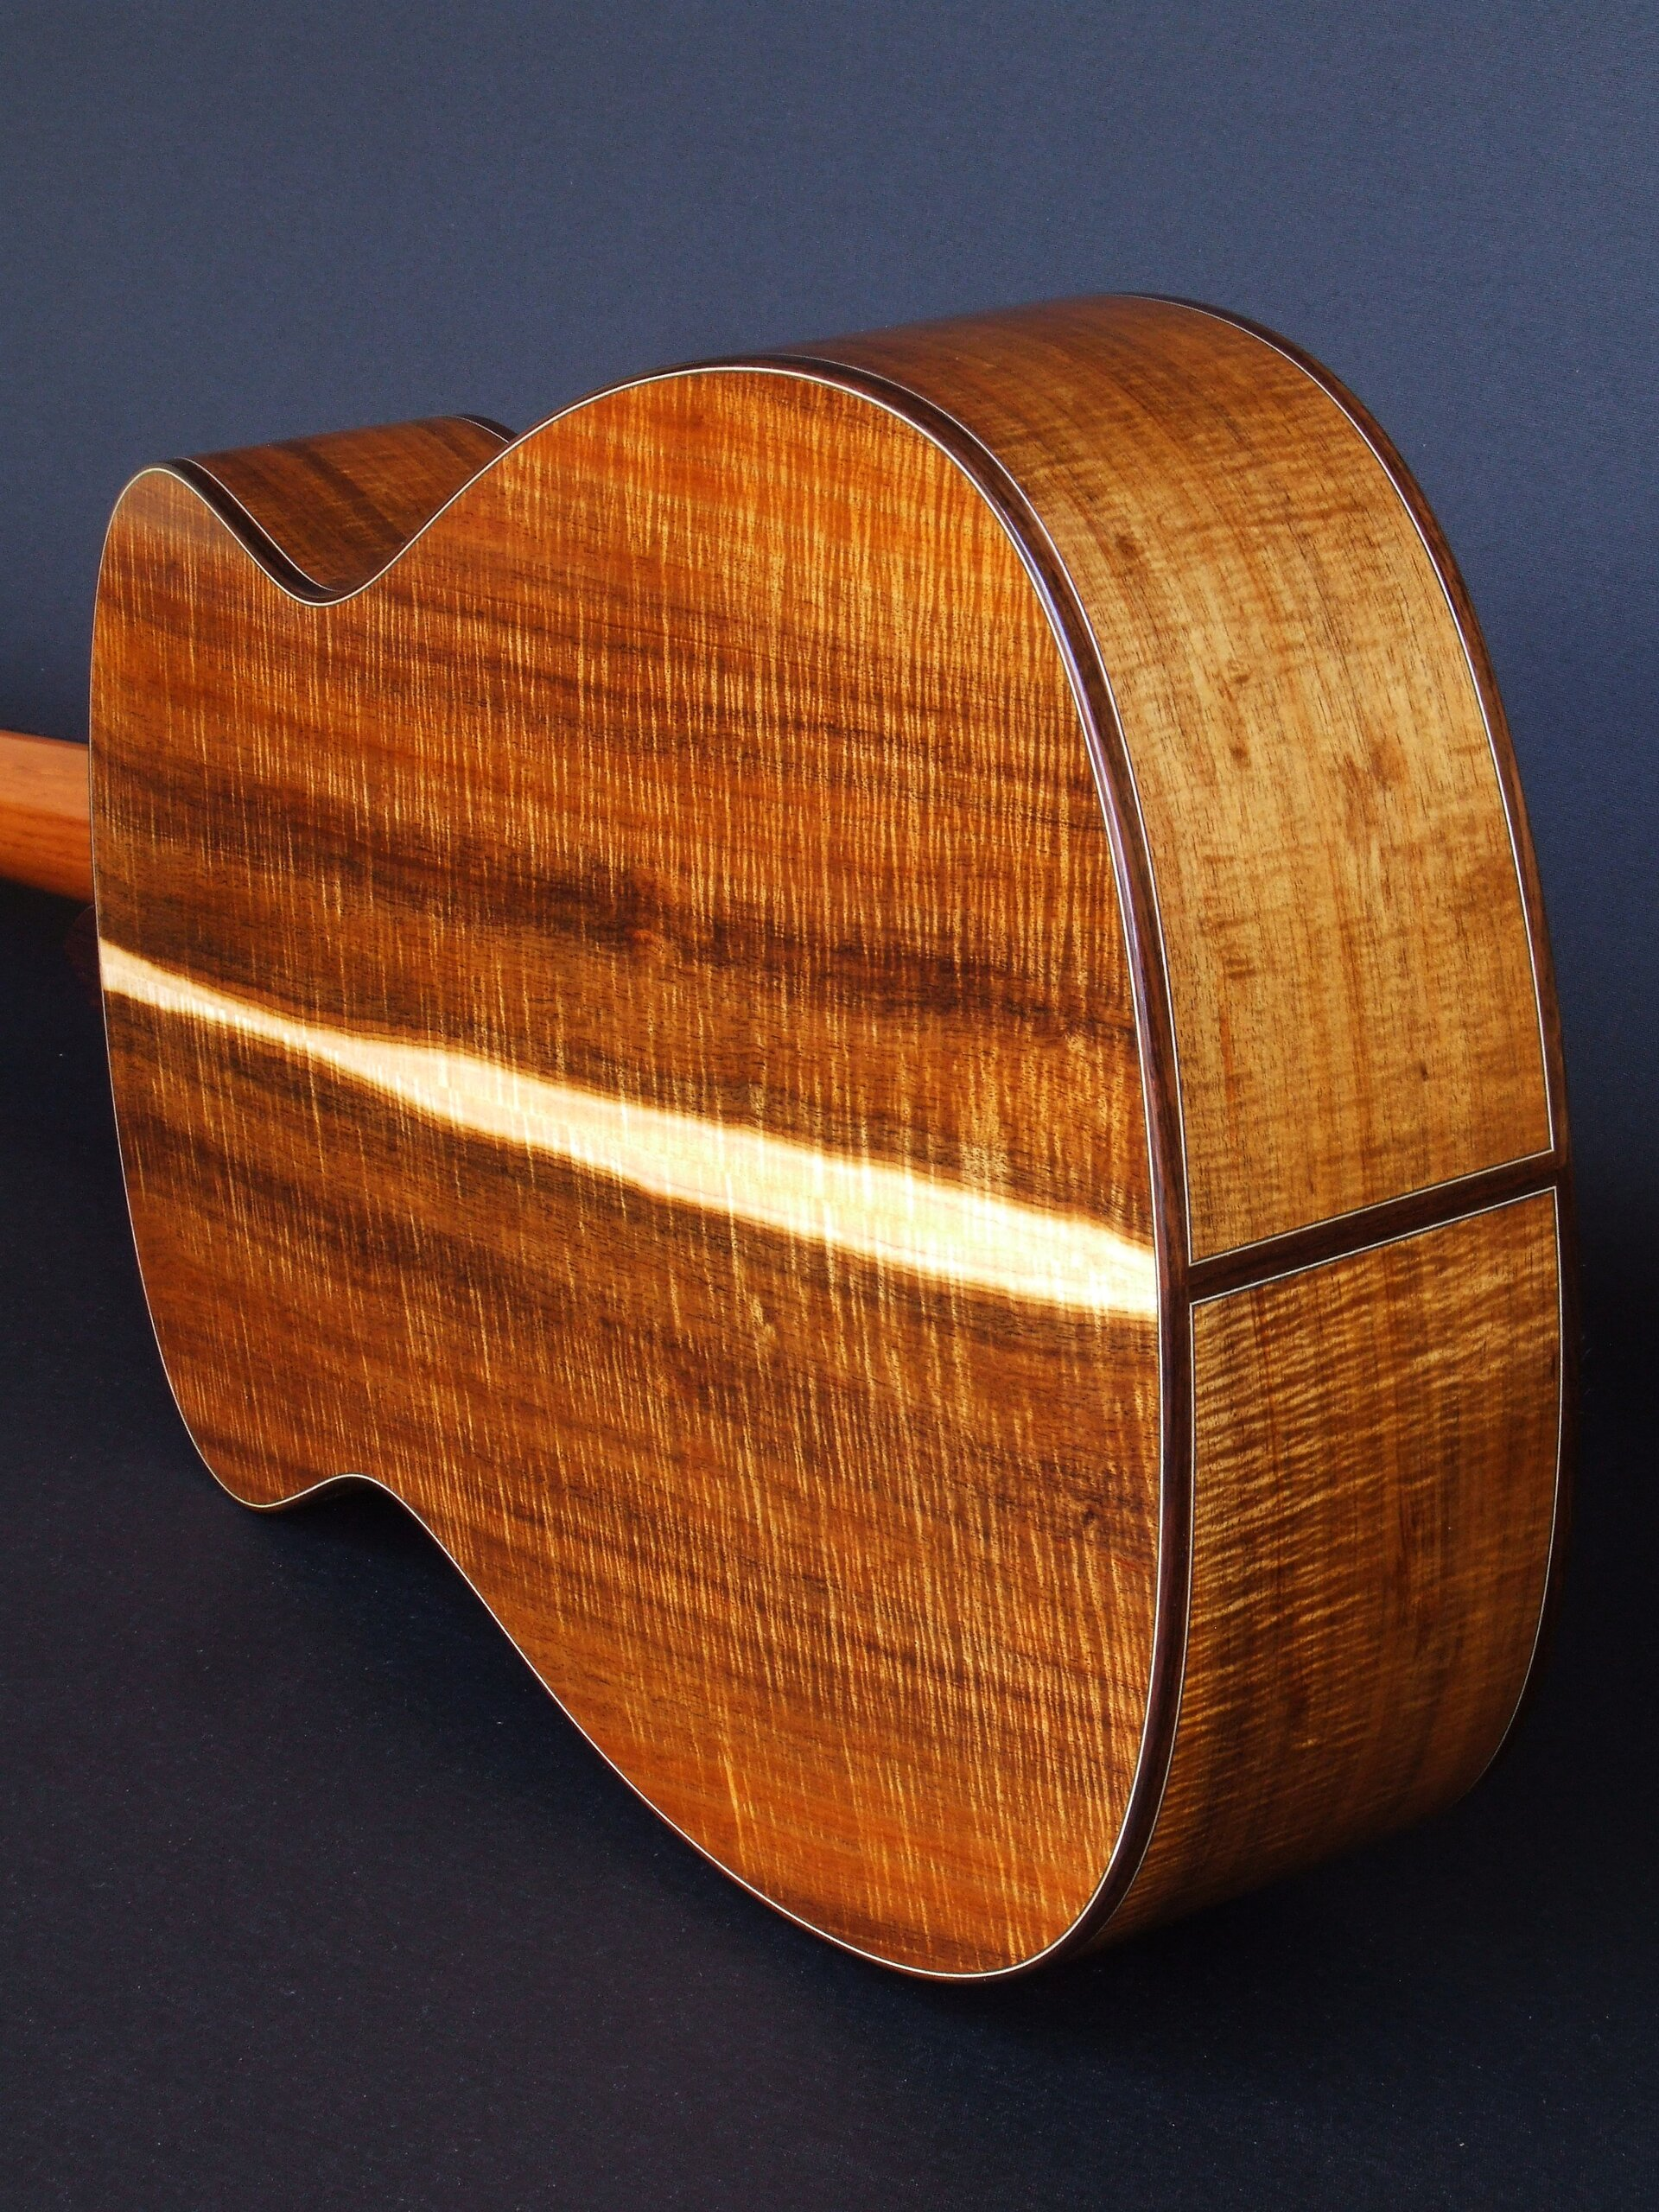 The back and sides of a guitar made with highly figured Australian Blackwood